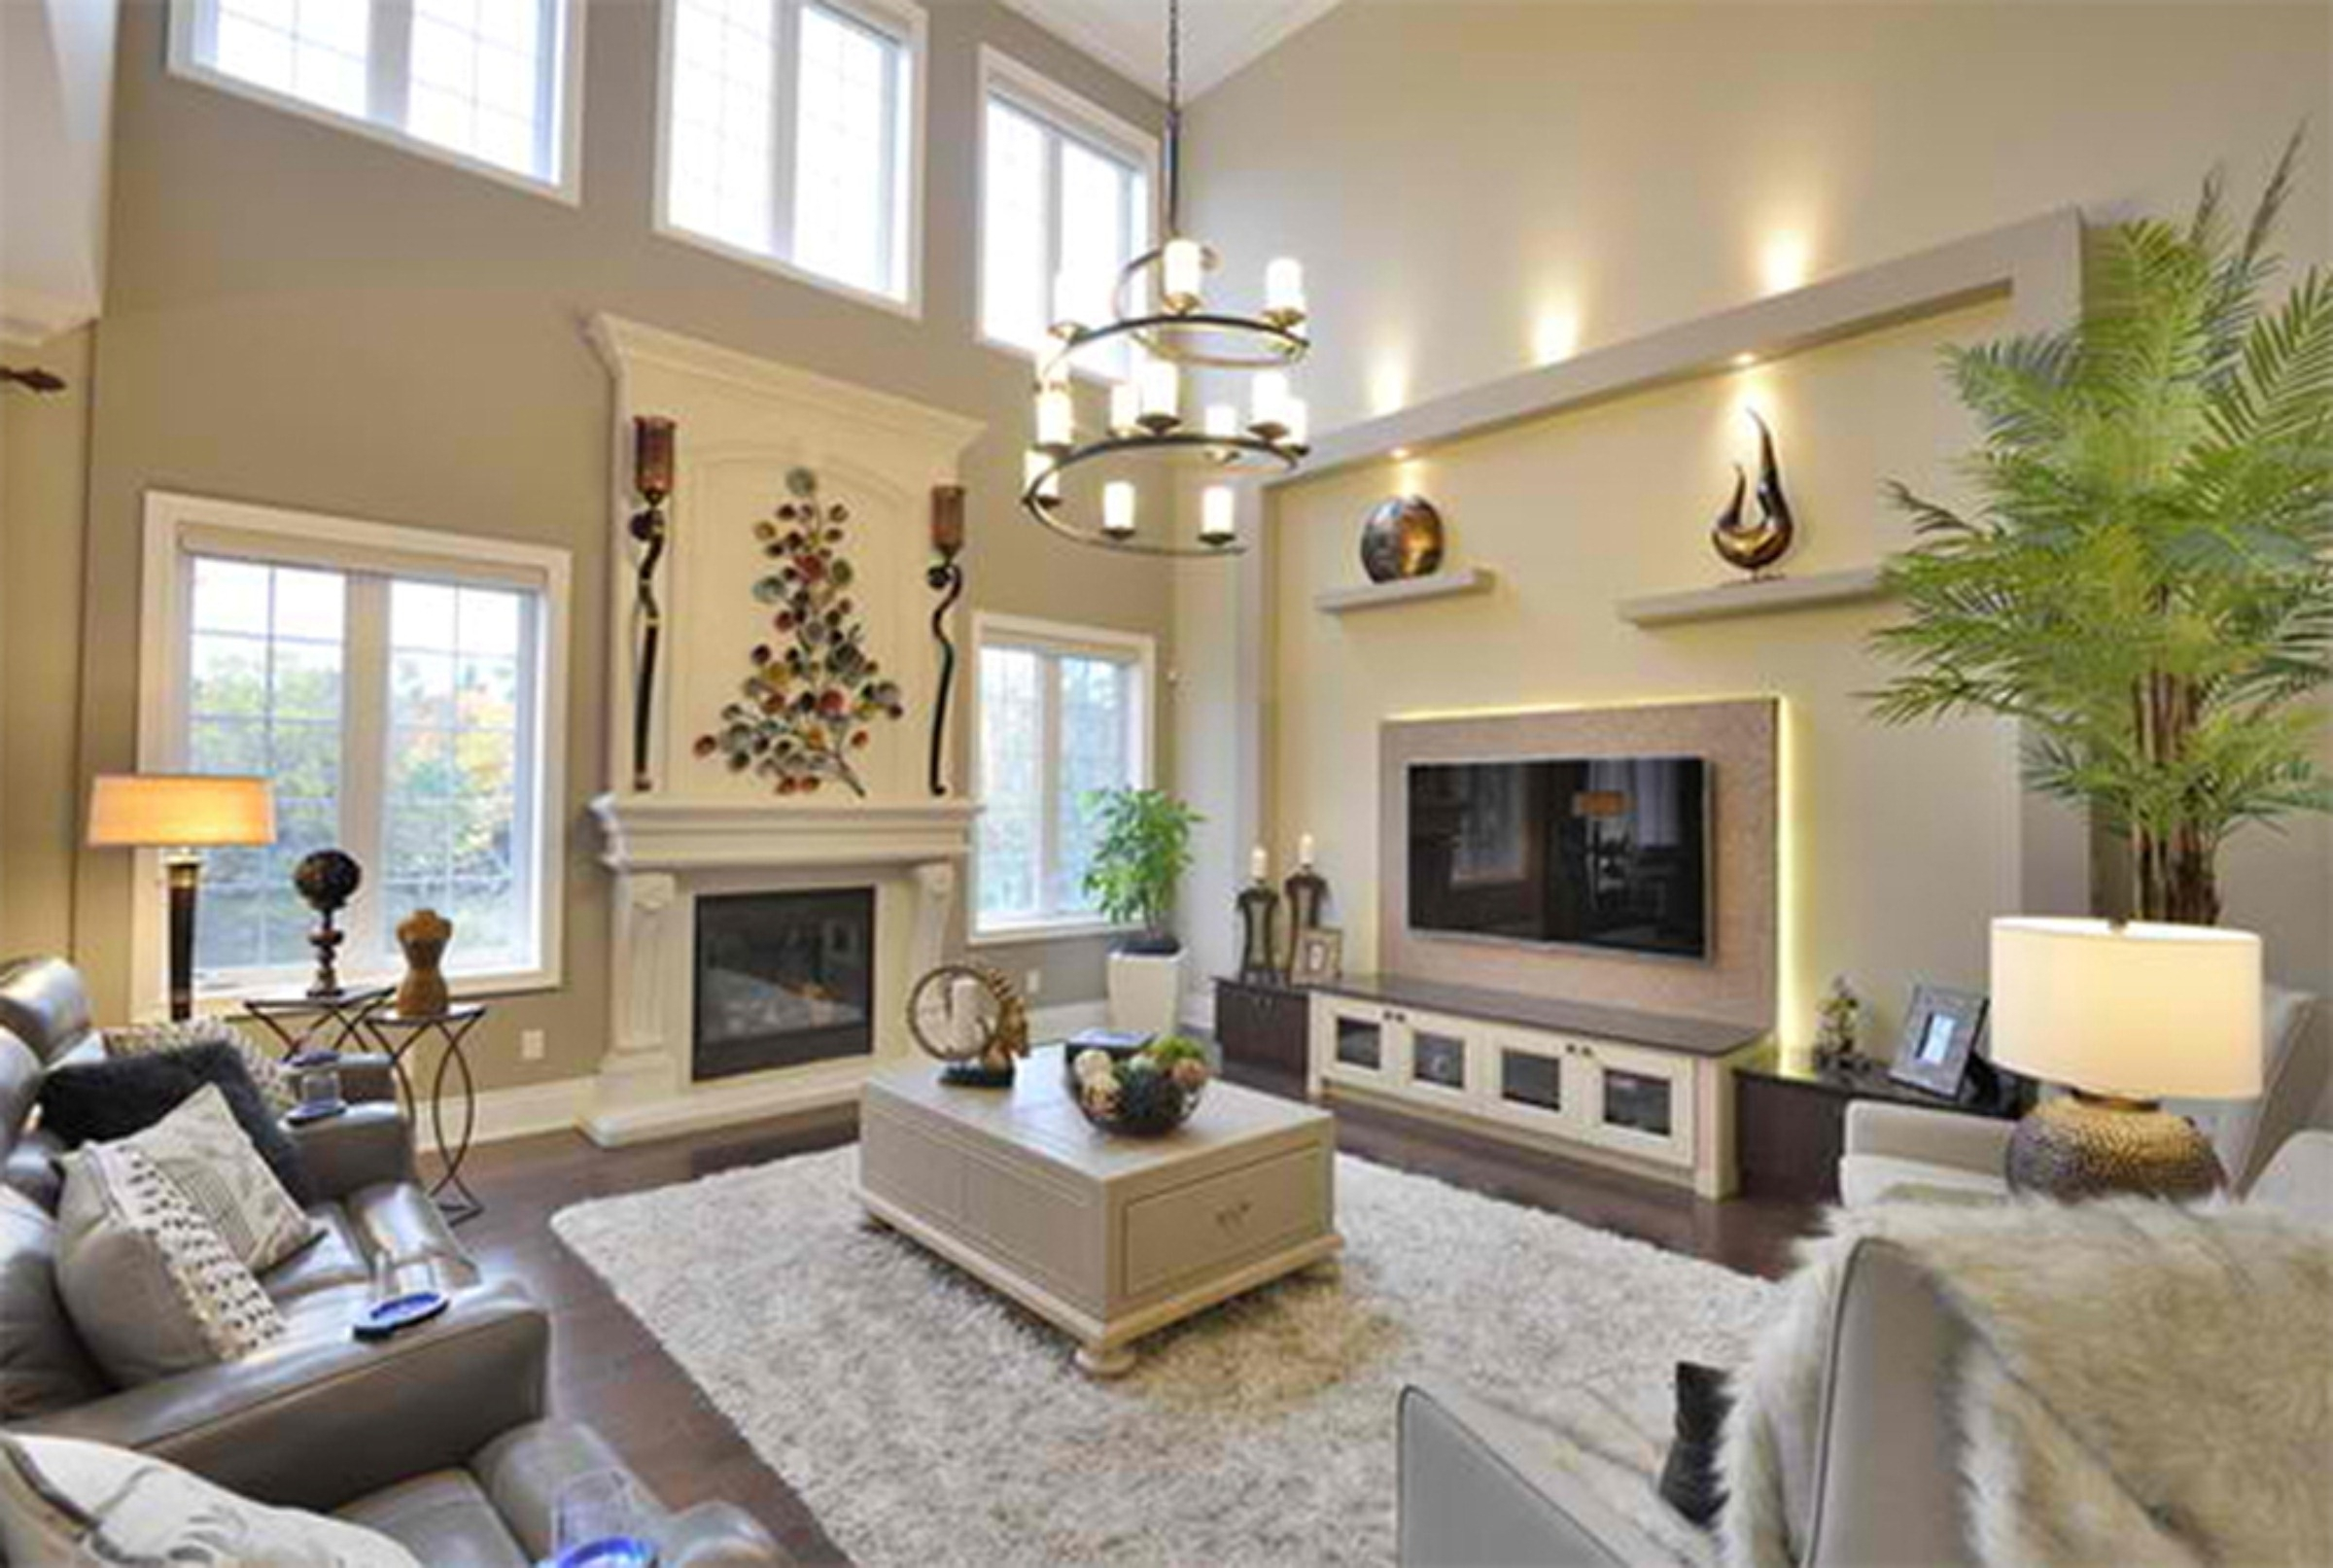 High Ceiling Living Room Ideas 15 Inspirations Of High Ceiling Wall Accents